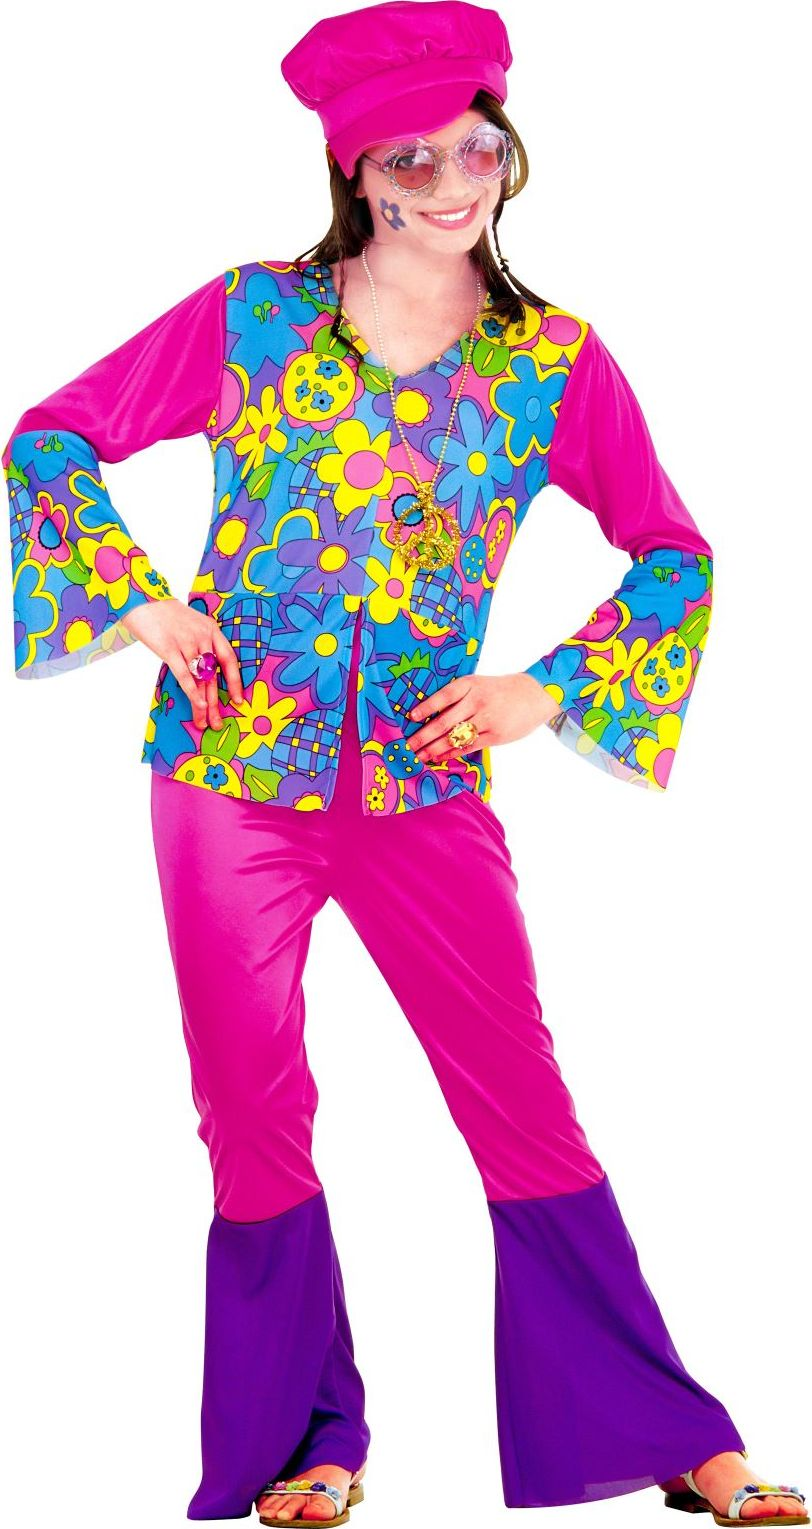 Flower power outfit dames